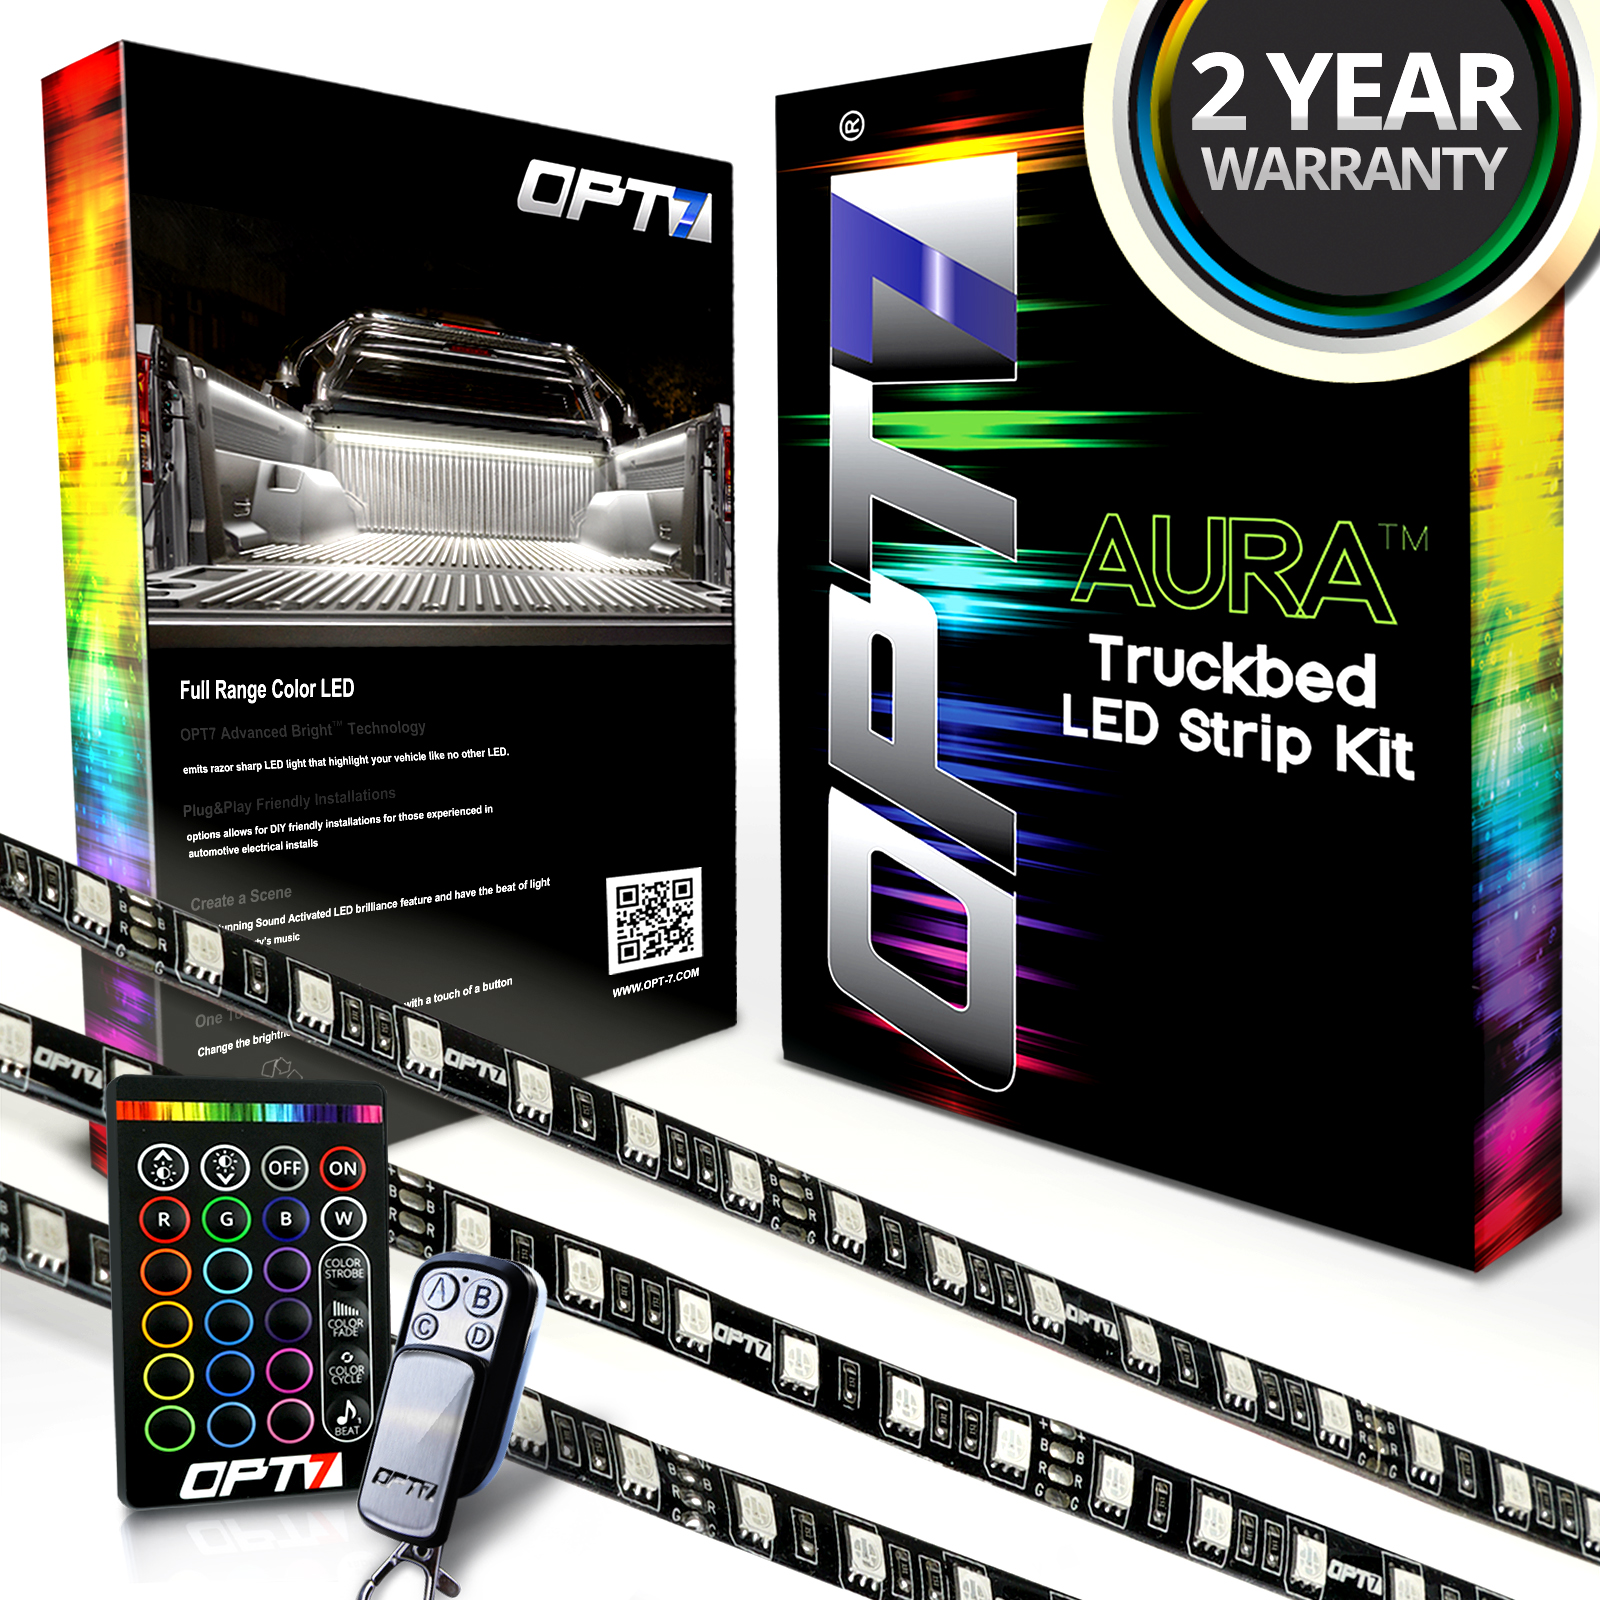 AURA 3pc Truck Bed FULL COVERAGE LED Lighting Strip Kit w/Sound-Activated Multi-Color Lights, Wireless Remote, OE-Style Rocker Switch, AUTO-ON Tailgate Pin Switch, and 2 Year Warranty